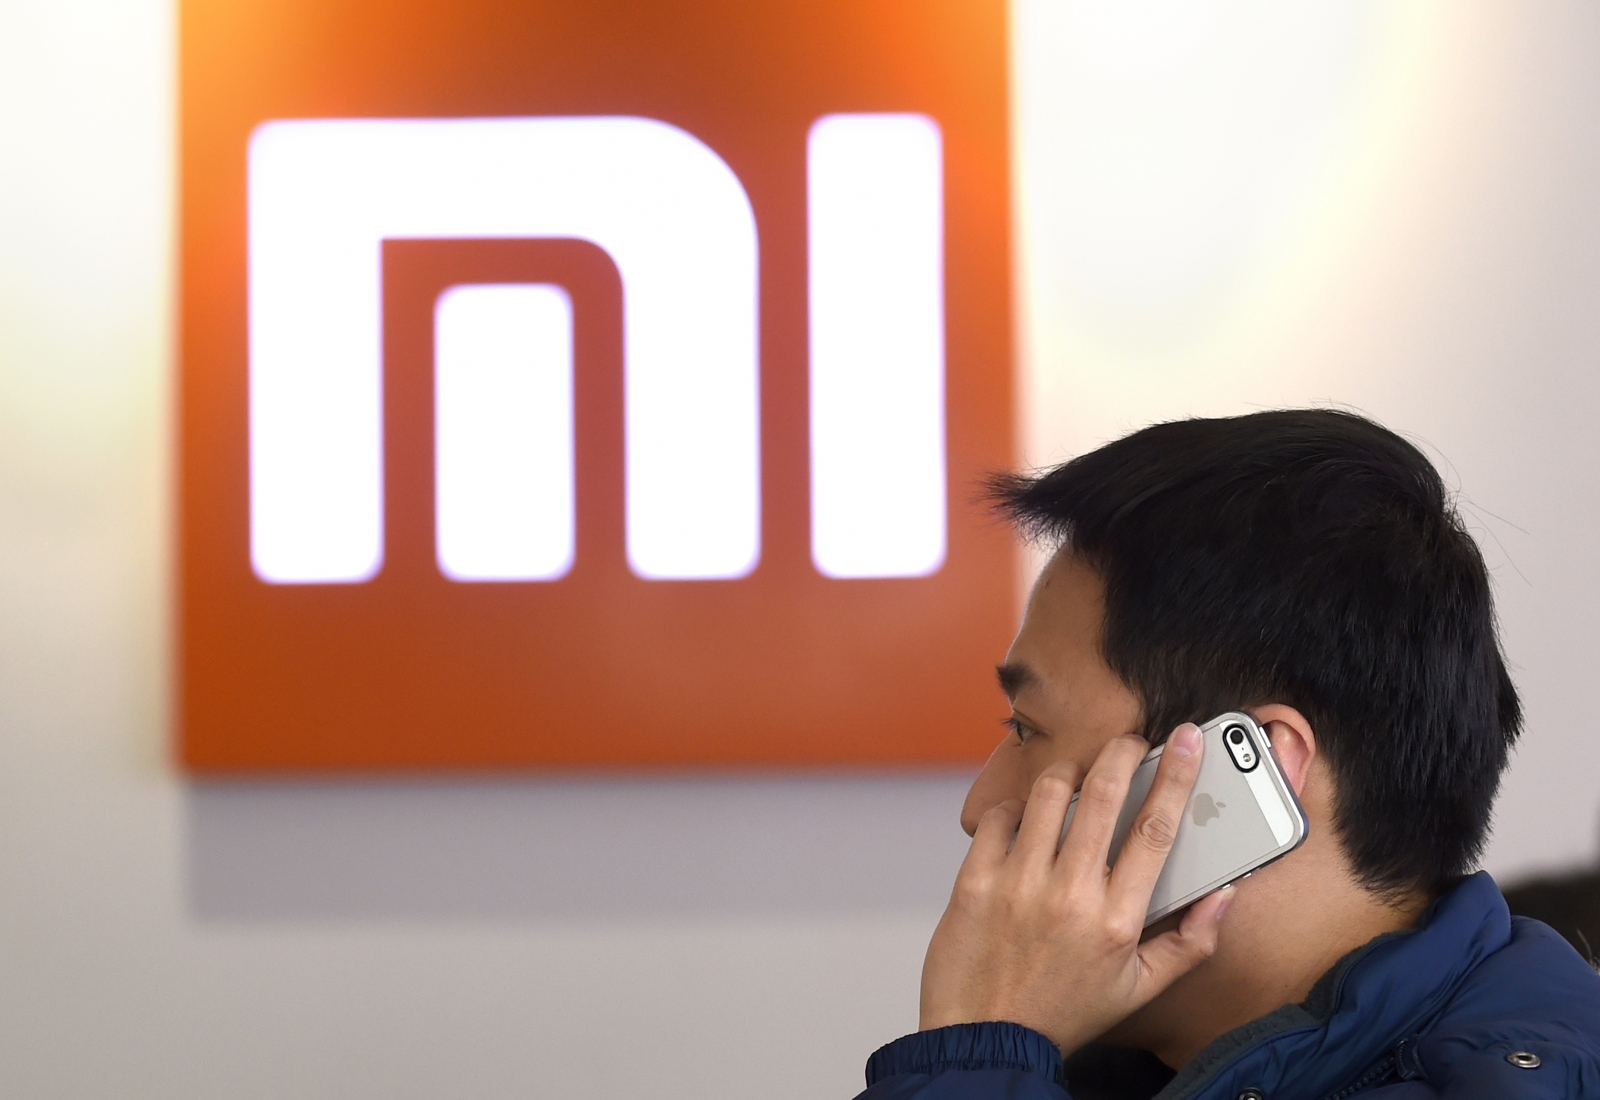 Mi Mix II to pack thinner bezels